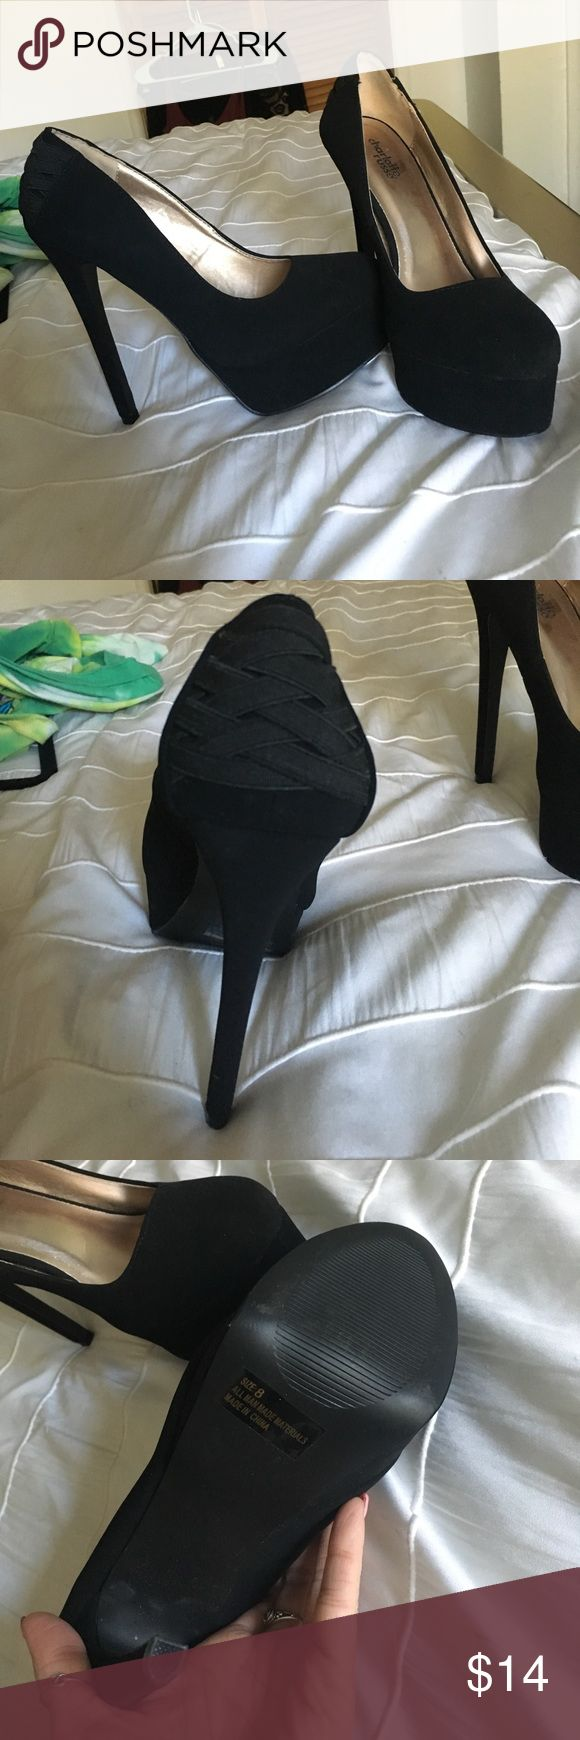 Black pumps Black Charlotte Russe Pumps, only warn once for about an hour (: Charlotte Russe Shoes Heels